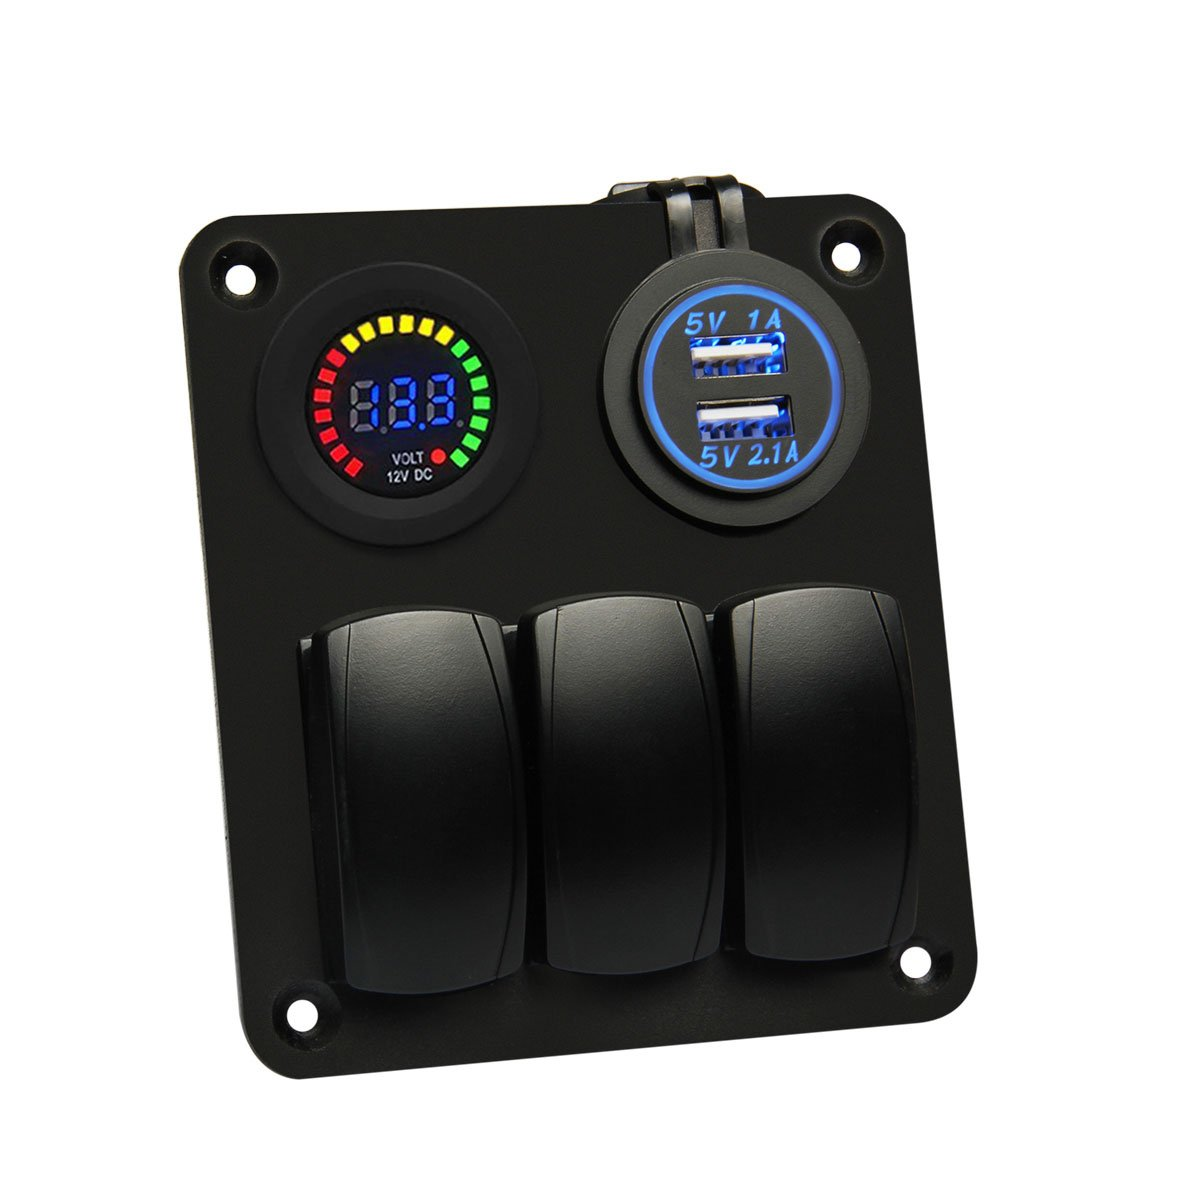 Amazon.com : Generic Marine/Boat Car 6 Gang Switch Panel with Light ...